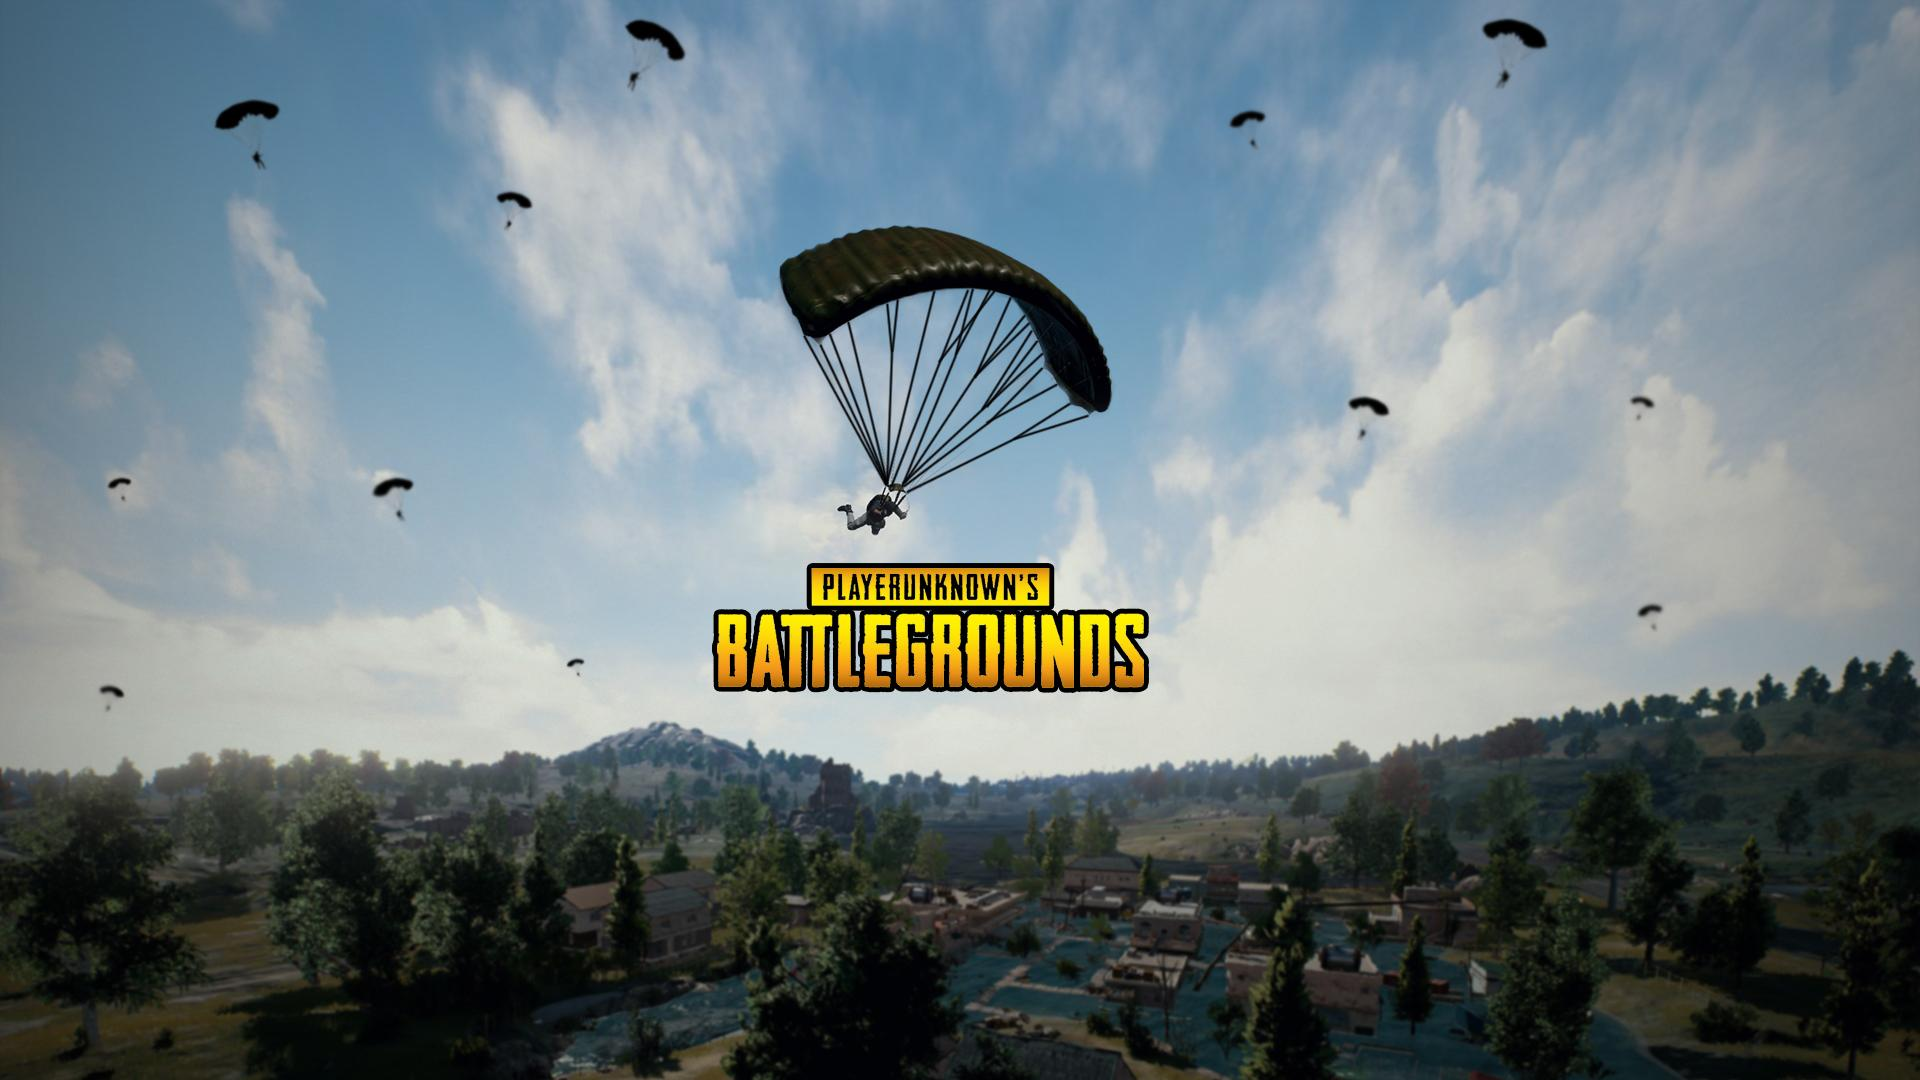 Pubg Player Unknown Battlegrounds Logo Uhd 4k Wallpaper: Why PUBG Should Embrace Fortnite Battle Royale